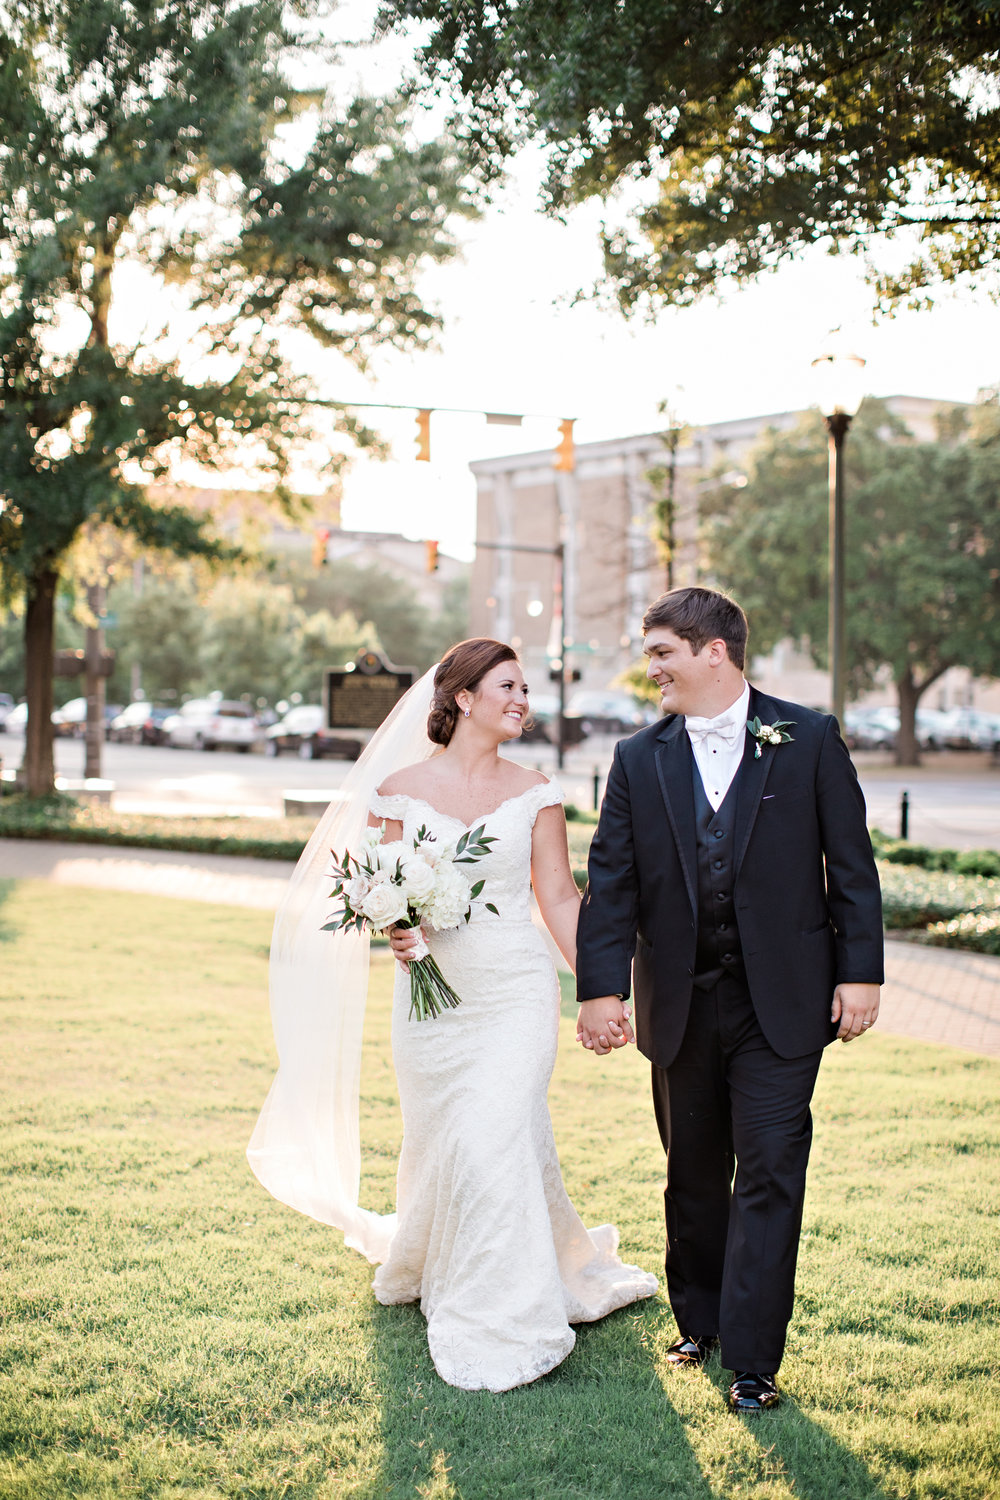 Alabama-Wedding-Photographers-Nick-Drollette-Josie and Heath-146.jpg